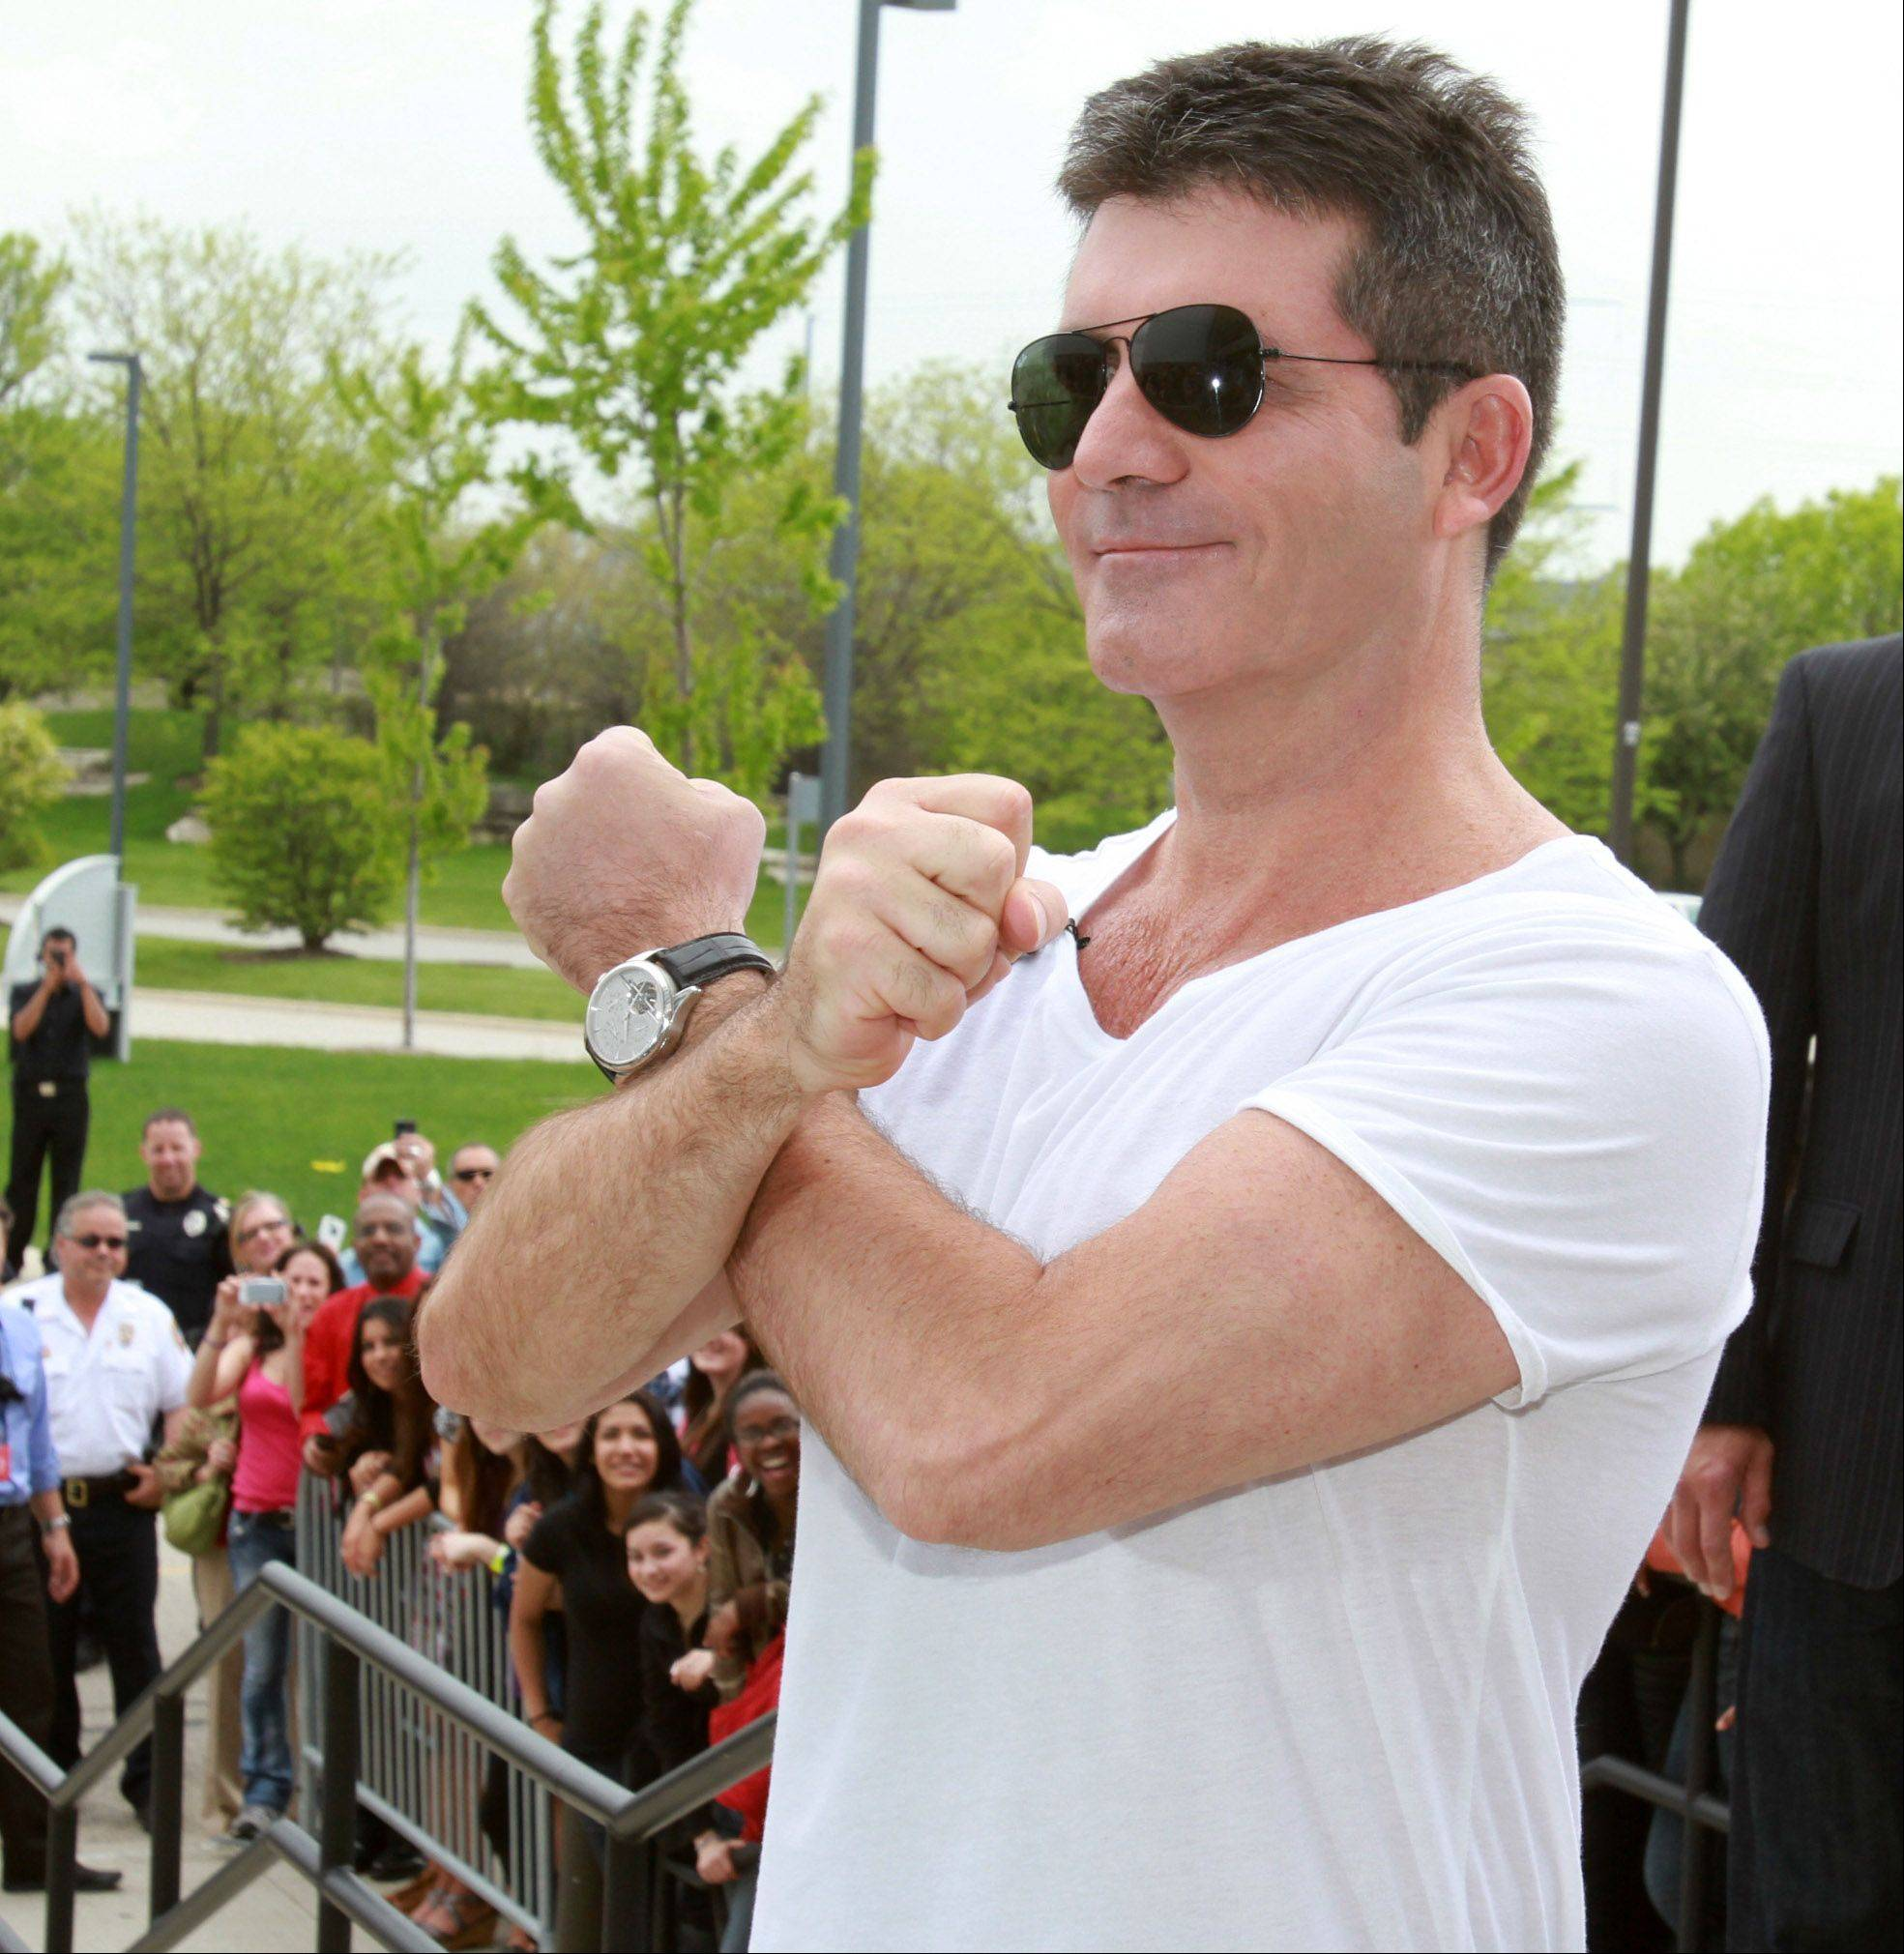 Simon Cowell makes an X sign with his arms as he arrives at the Sears Centre for taping of the judges round for The X Factor in Hoffman Estates on Thursday, May 19th.